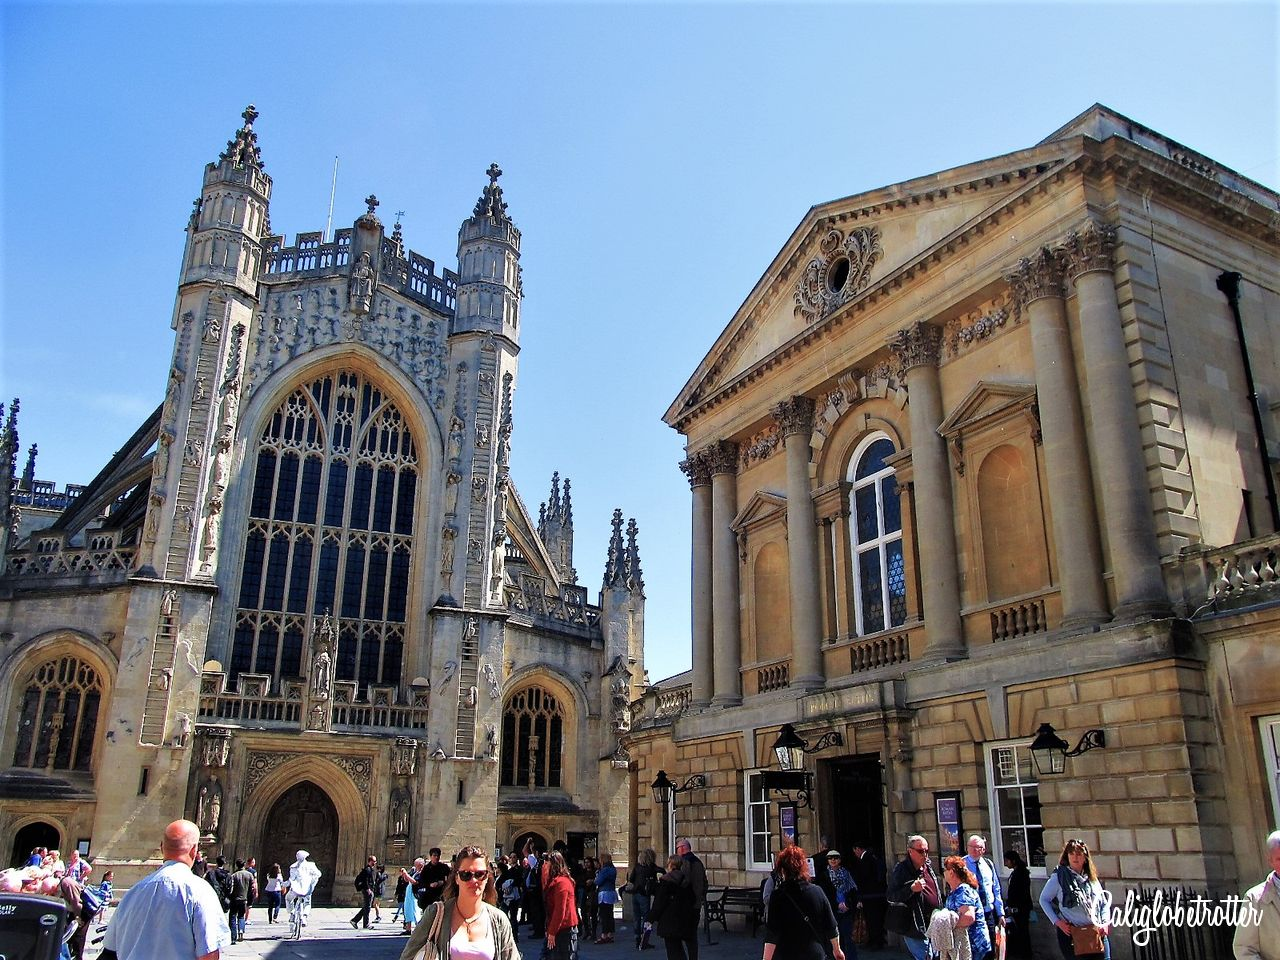 Bath, England | Stupid Pretty Towns in Europe | Best European Villages to Visit | Small Towns in Europe | Picturesque European Town | Best Towns to Visit in England | Pretty English Towns | Fairy Tale Towns in Europe | European Fairy Tale Villages | Best Old Towns in Europe | #Bath #England #Europe - California Globetrotter